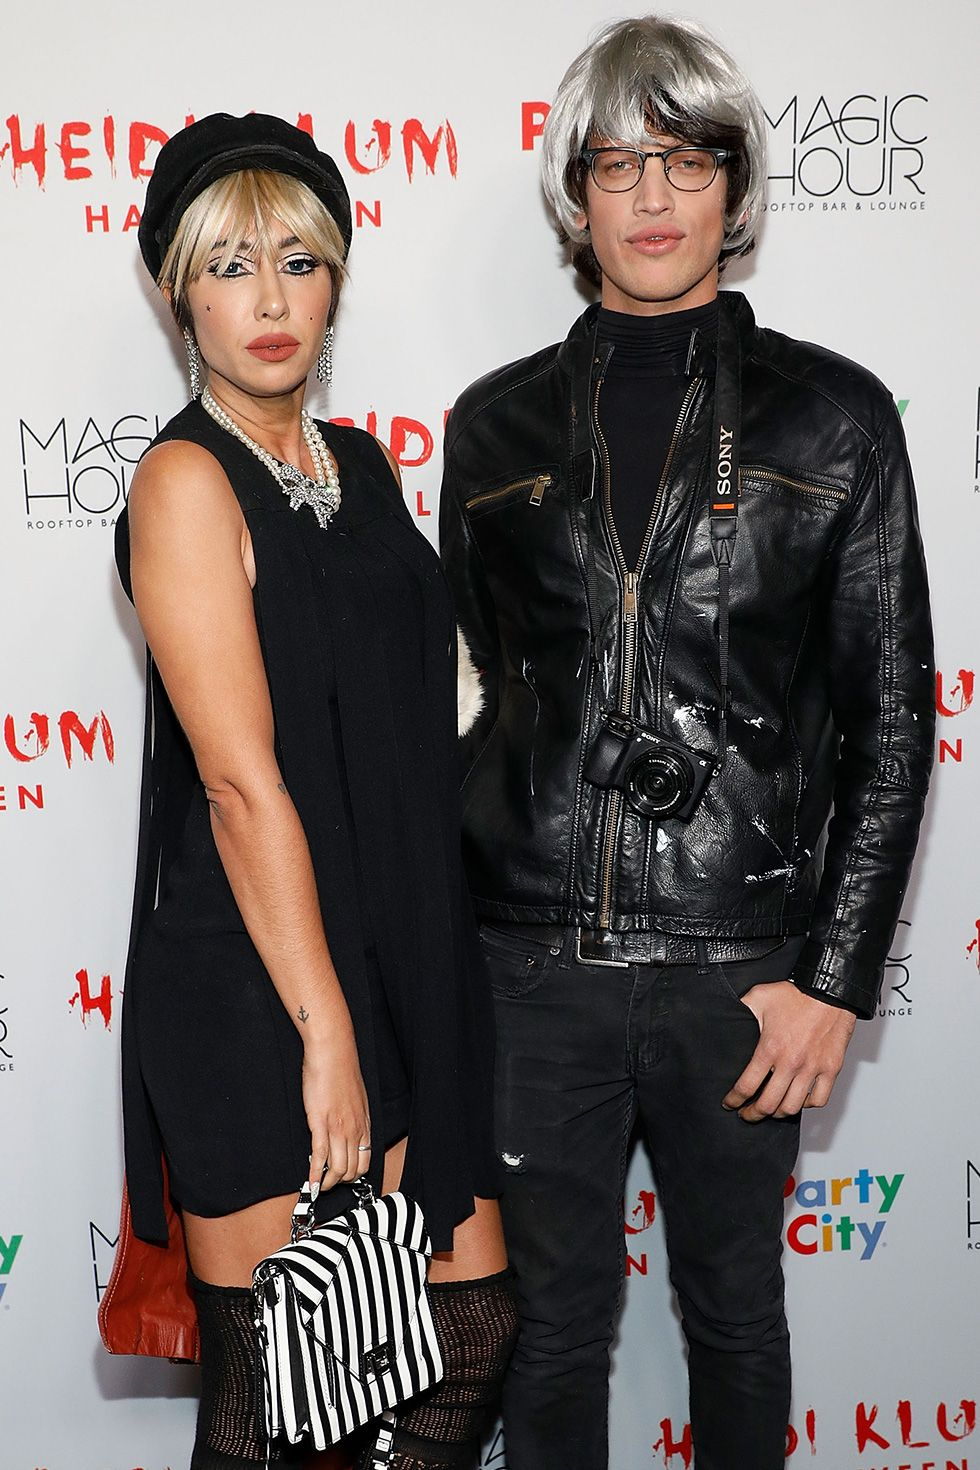 Jackie Cruz and Fernando Garcia - 1970s/Andy Warhol Actress Jackie Cruz and boyfriend Fernando Garcia went for a 1970s Andy Warhol-inspired look at Heidi Klum's 2017 Halloween party in New York City.